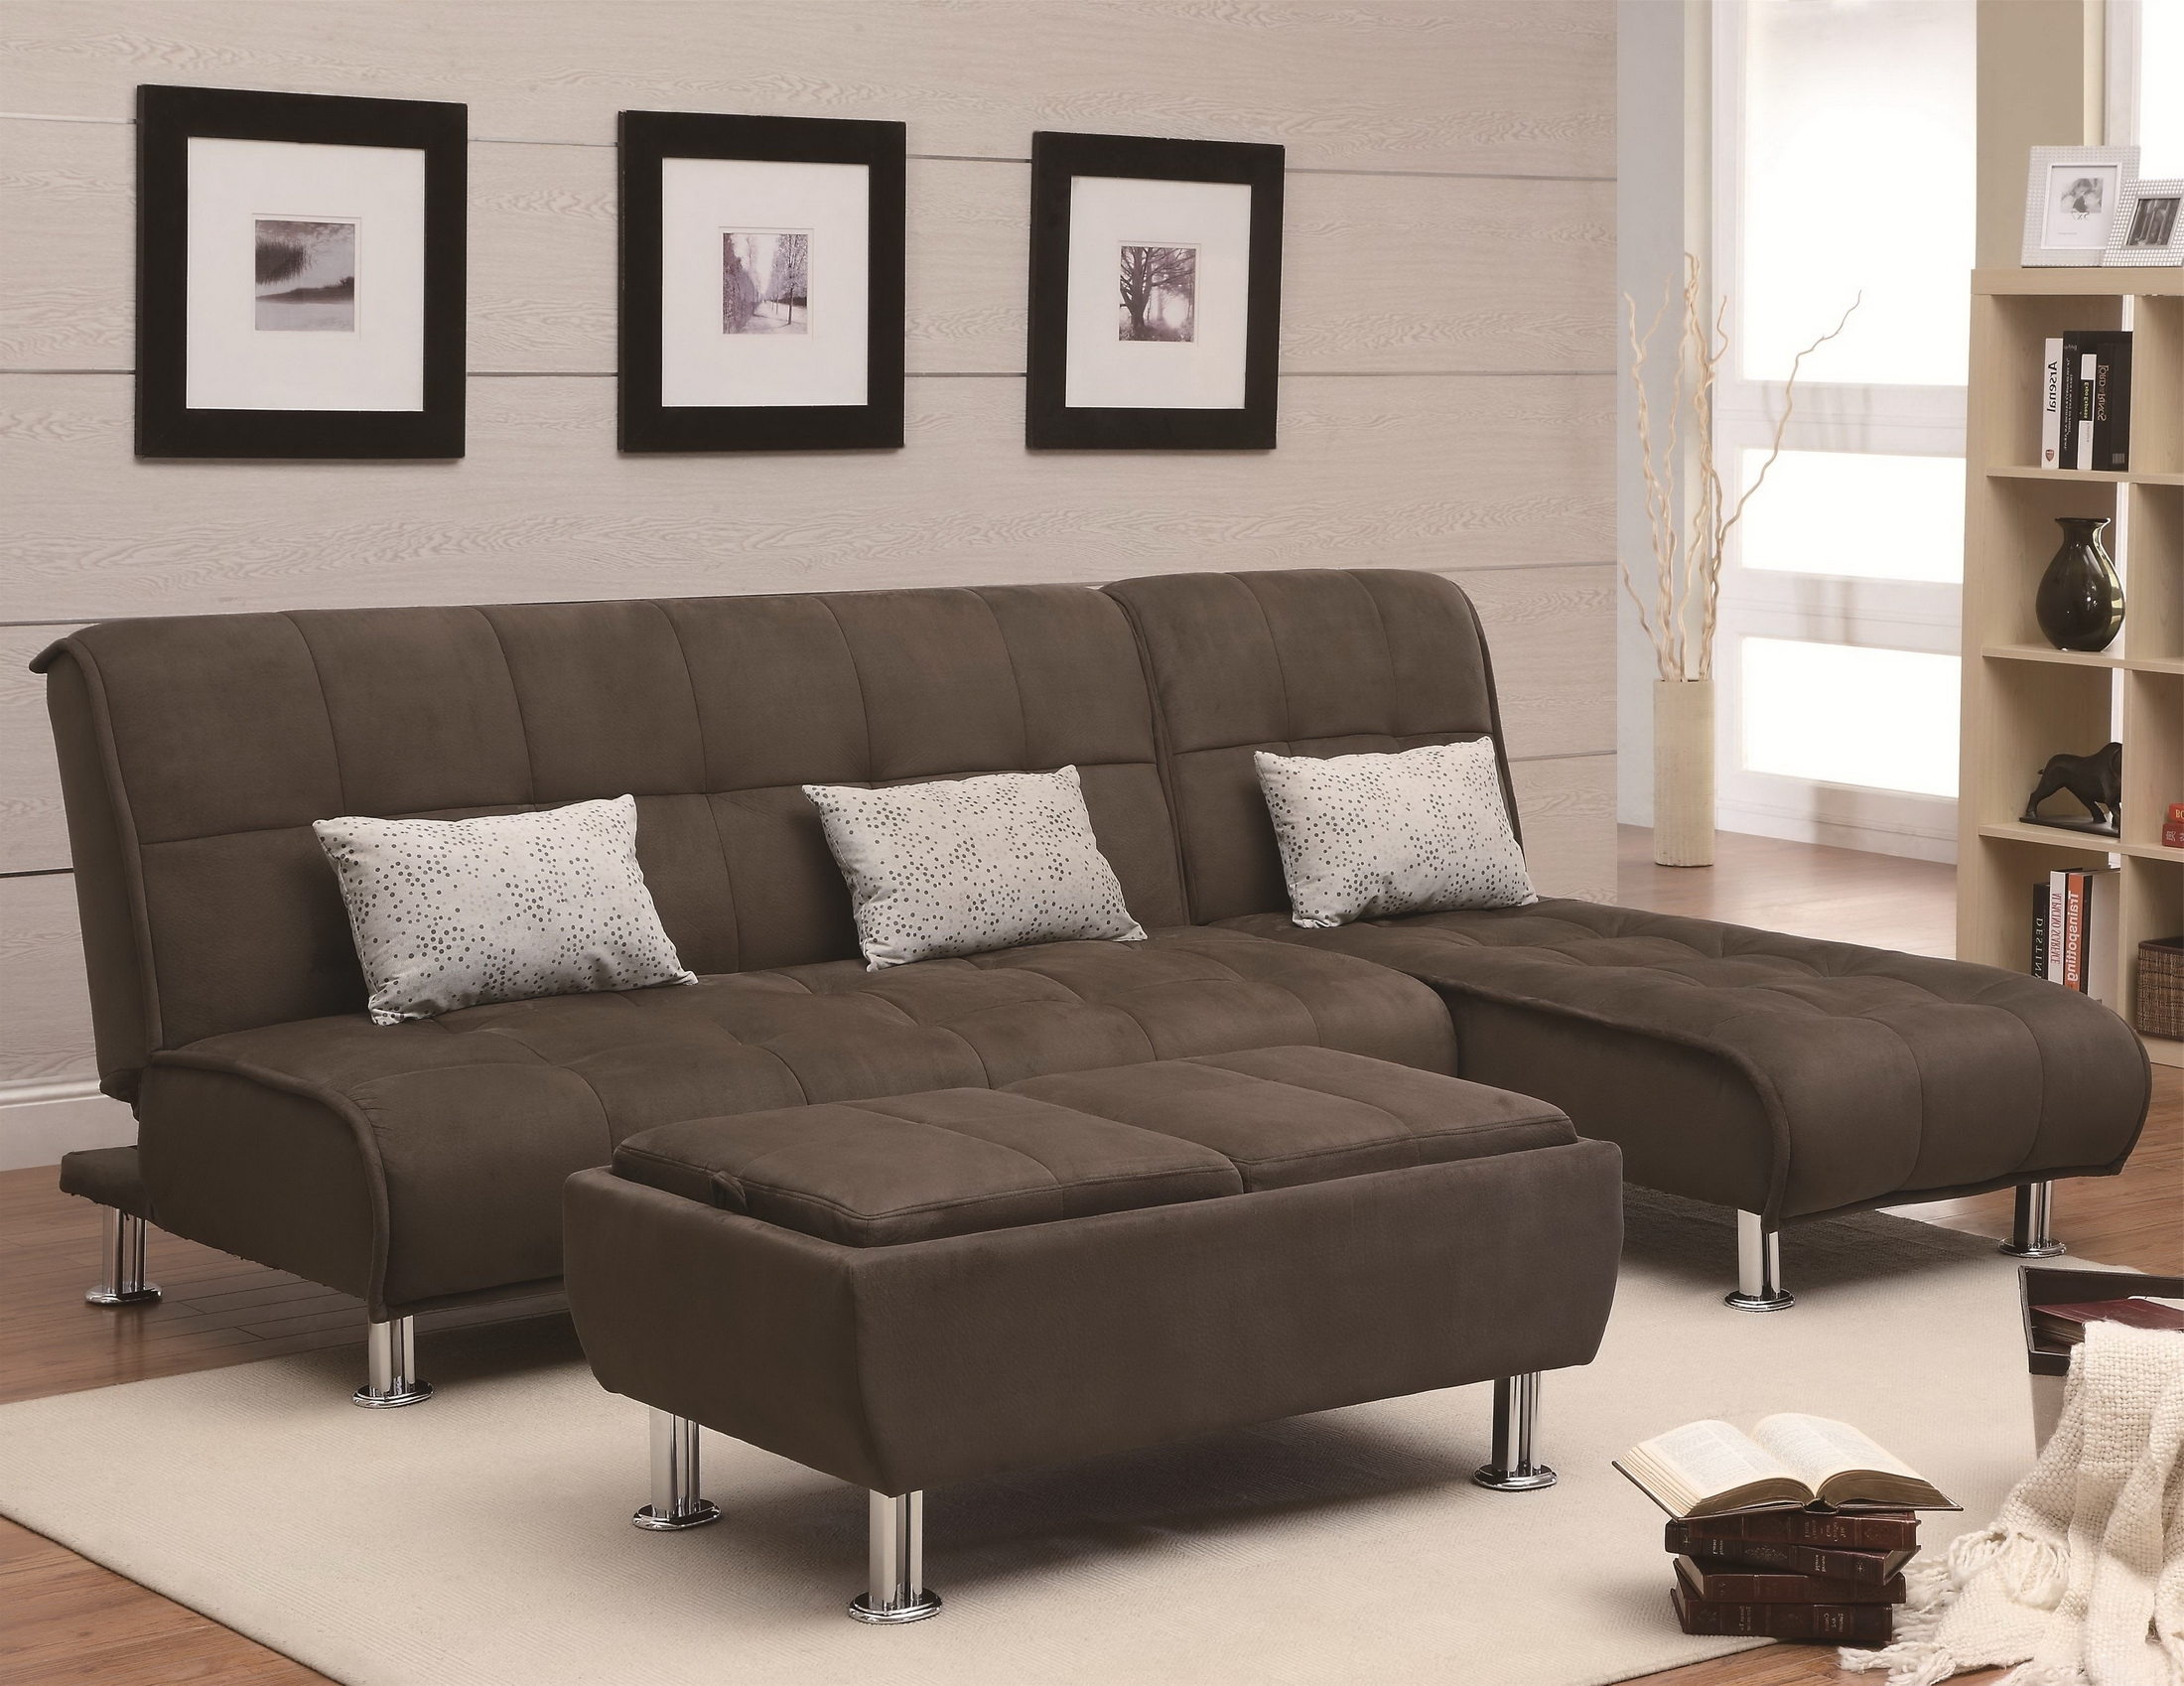 Brown Velvet Sectional Sofa With High Back And Grey Cushions Plus With Regard To Most Current Sectional Sofas With High Backs (View 5 of 20)